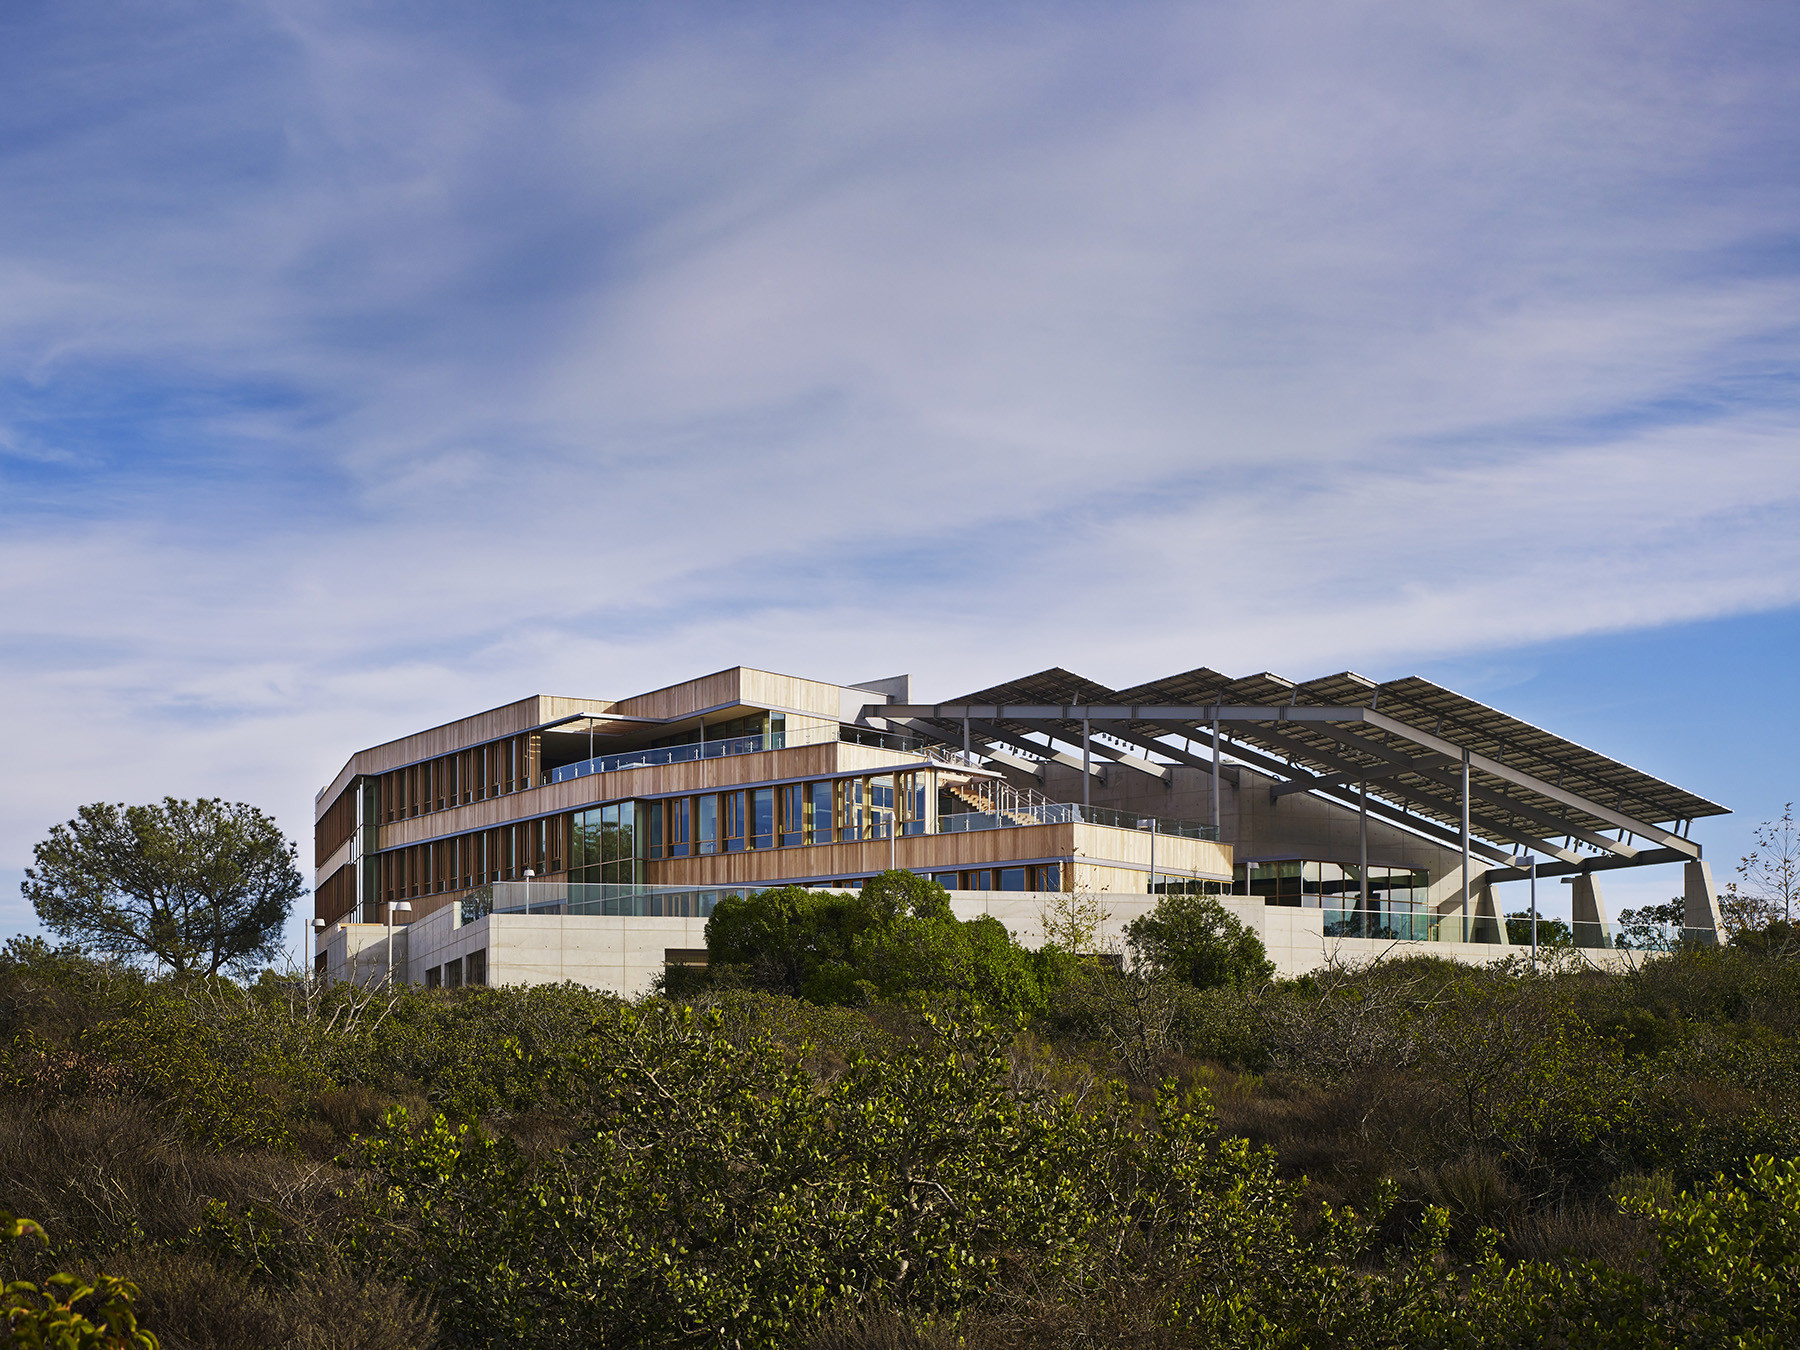 J. Craig Venter Institute © Nick Merrick, Hedrich Blessing